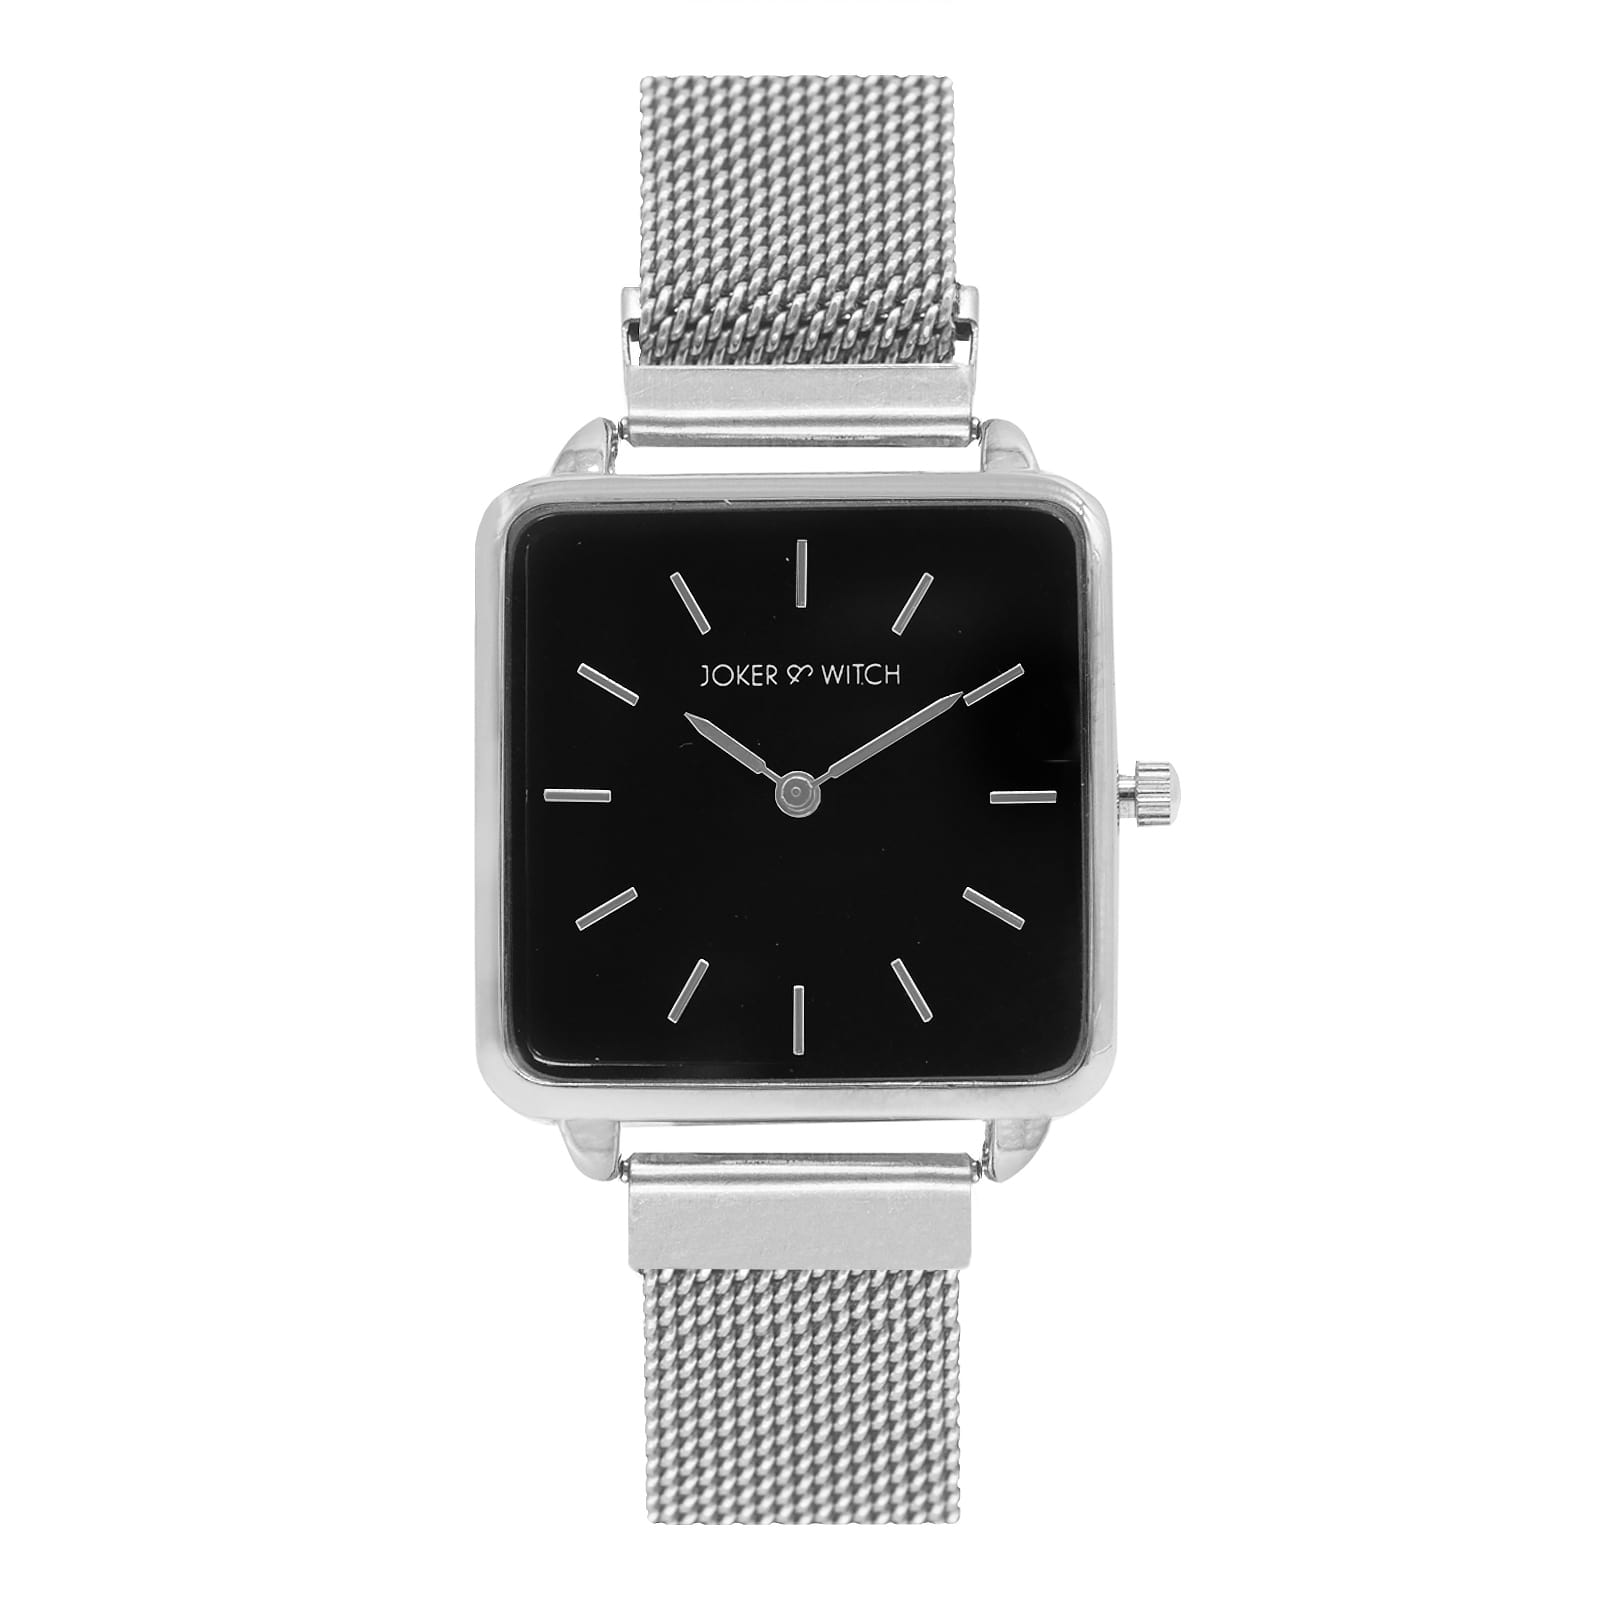 Vintage Square Black Dial Silver Magnetic Watch - Joker & Witch